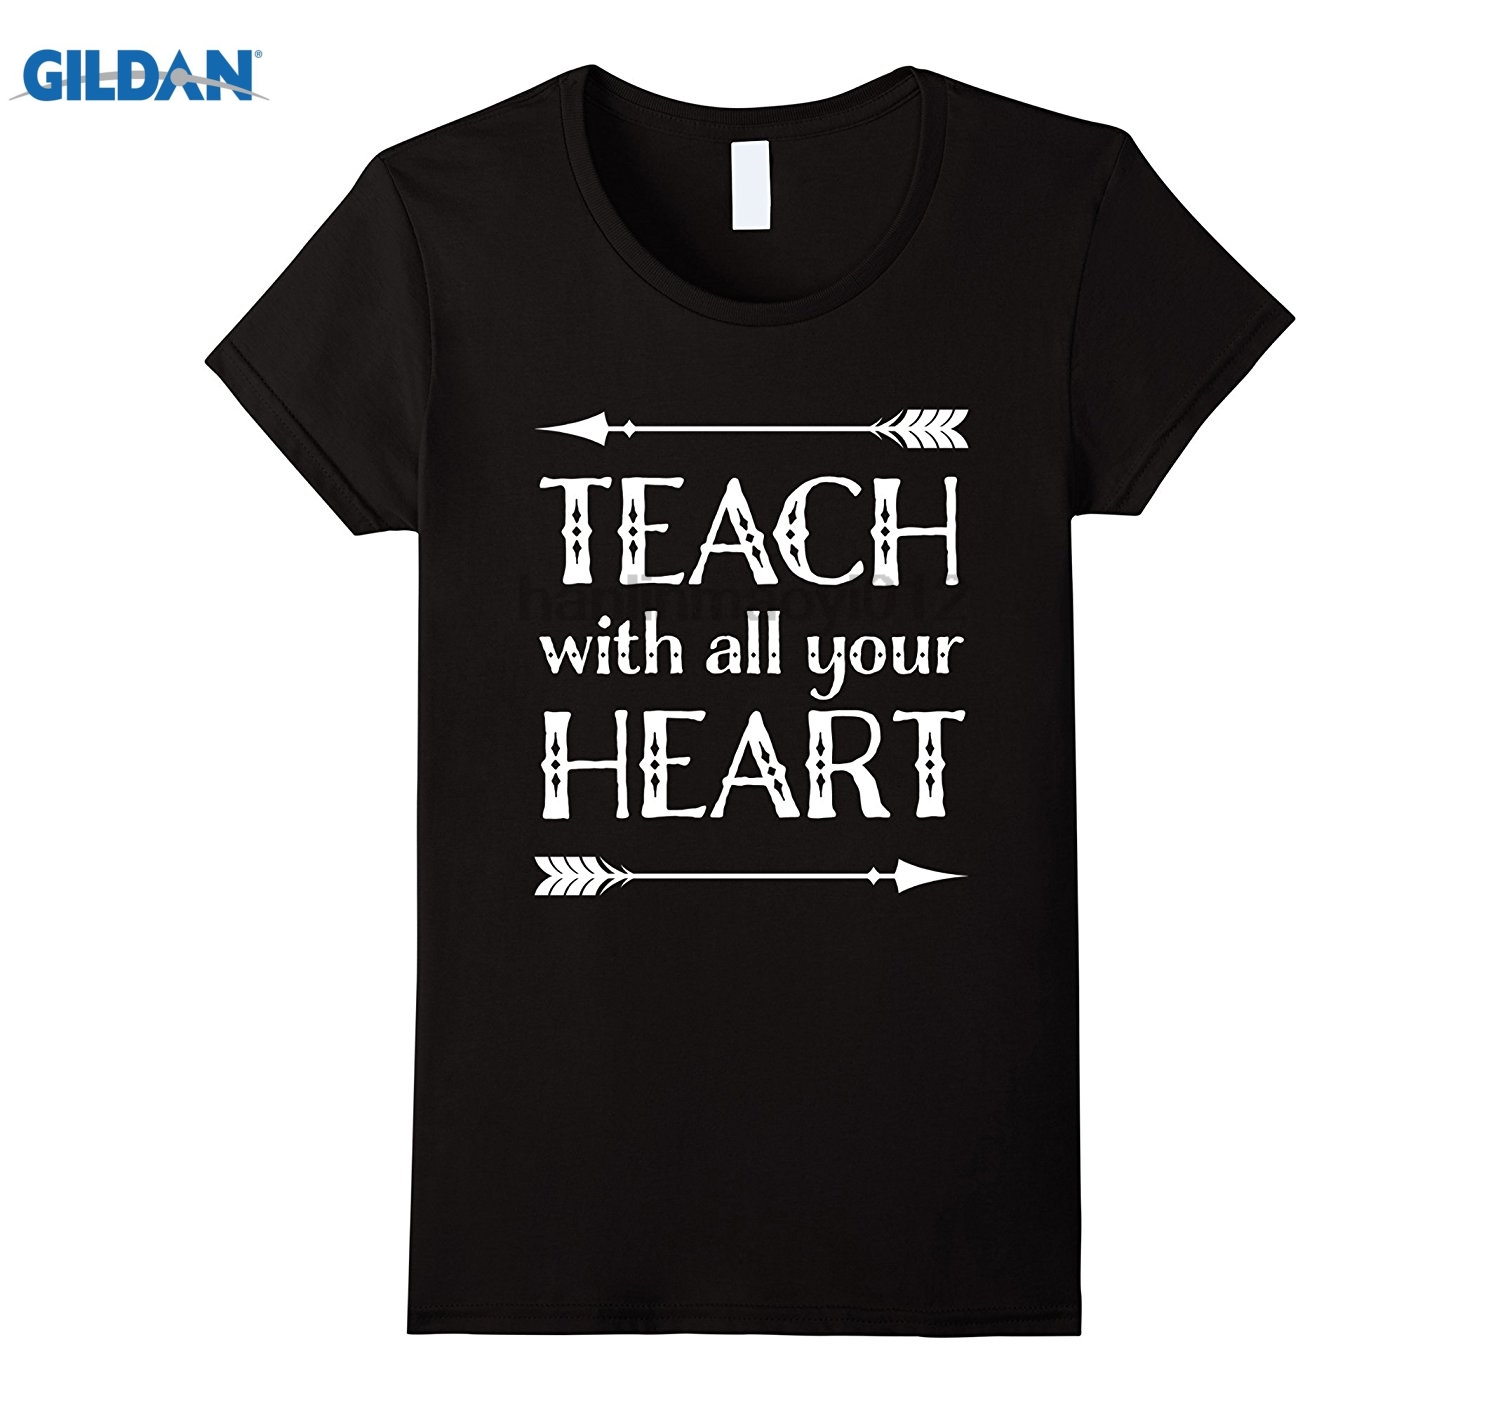 GILDAN Teacher T-shirt Back To School Teaching Appreciation Gift summer dress T-shirt